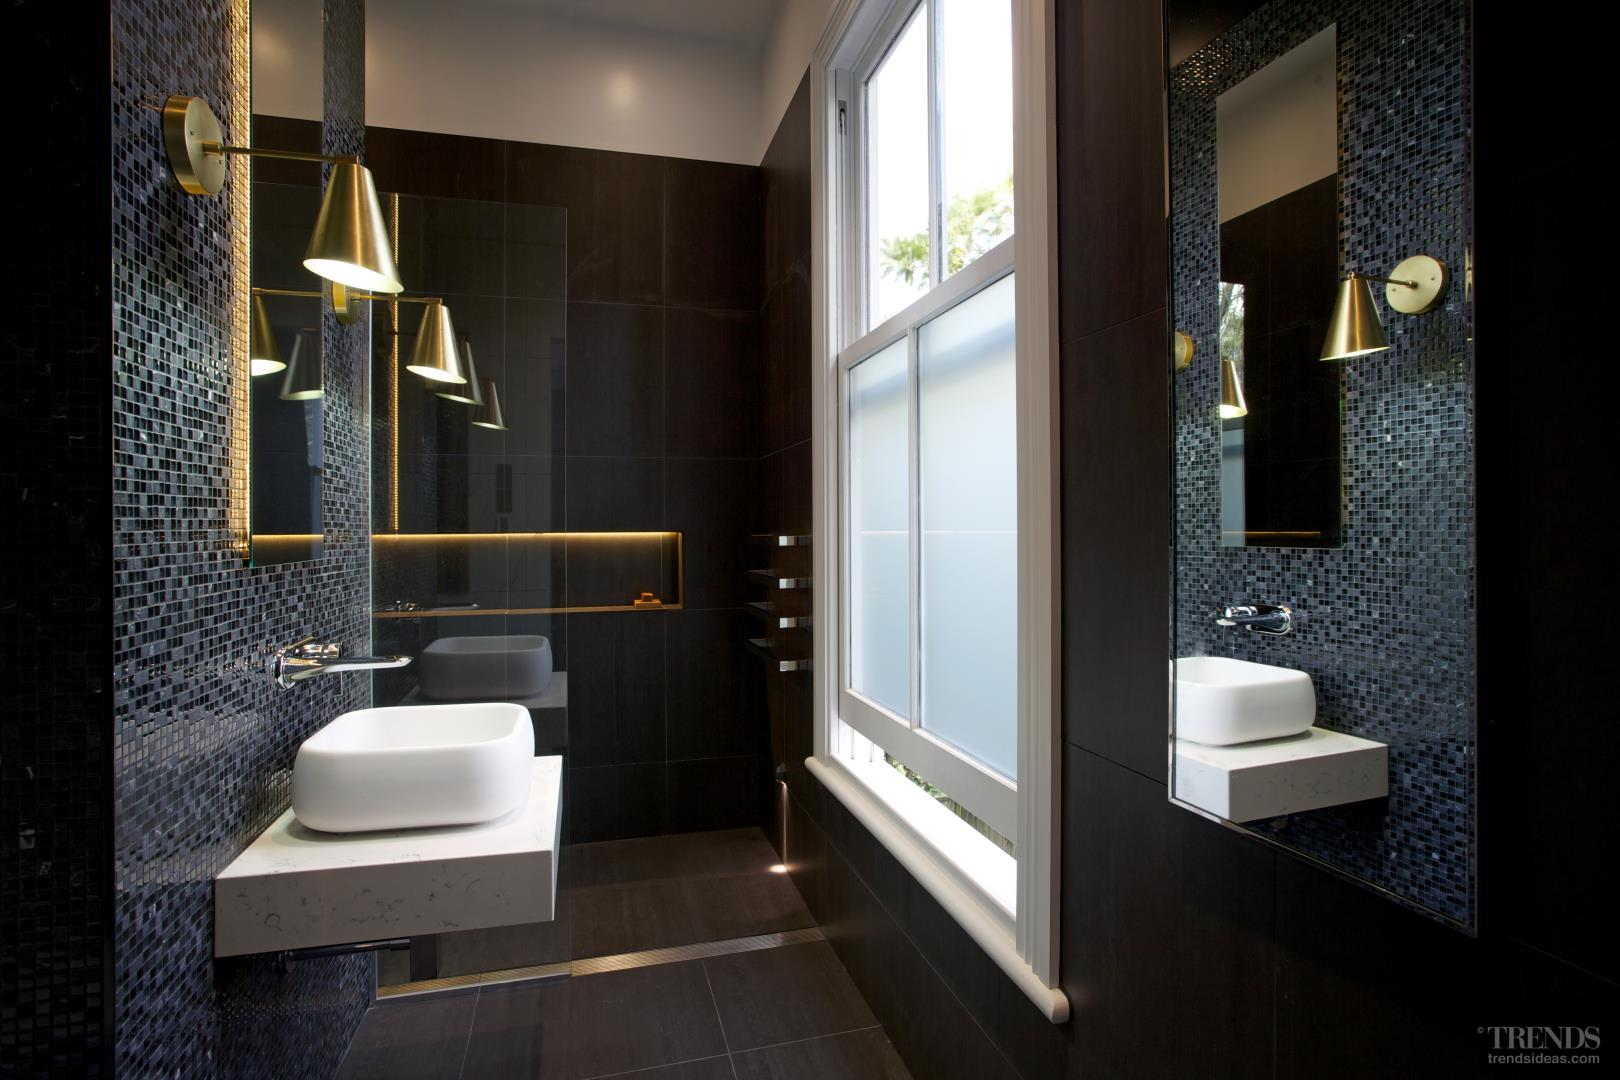 Bathroom Remodel With Black And White Theme Mosaics And Hidden Lighting